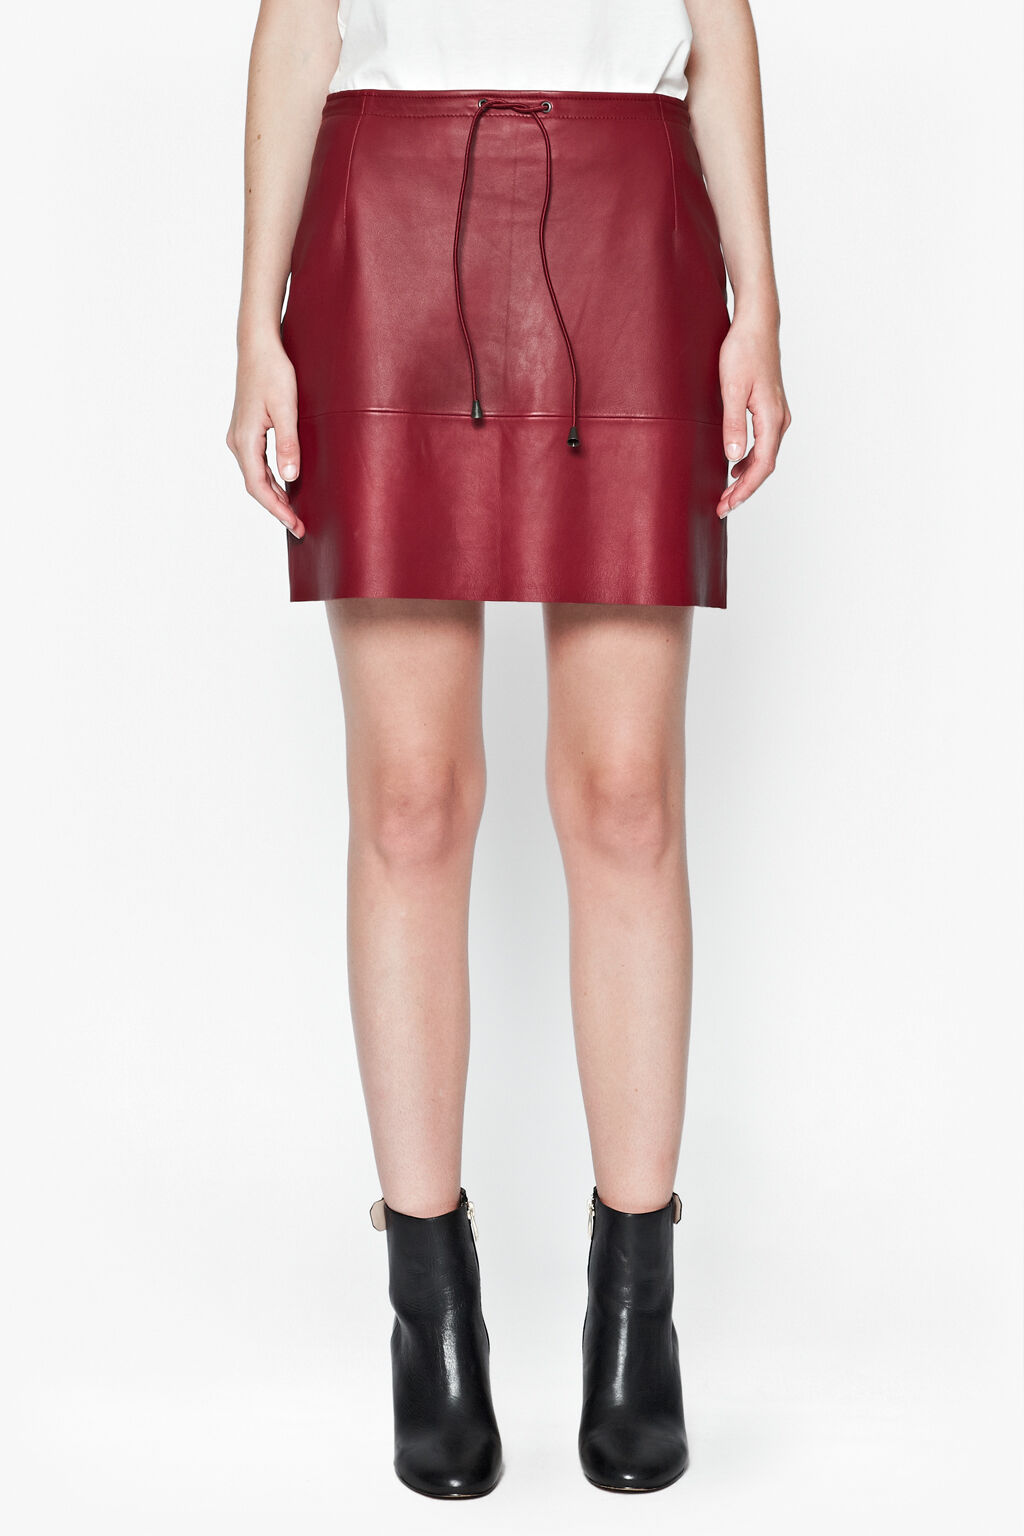 248 French Connection Mini Skirt Leather Burnt Whisky NEW NWT 10